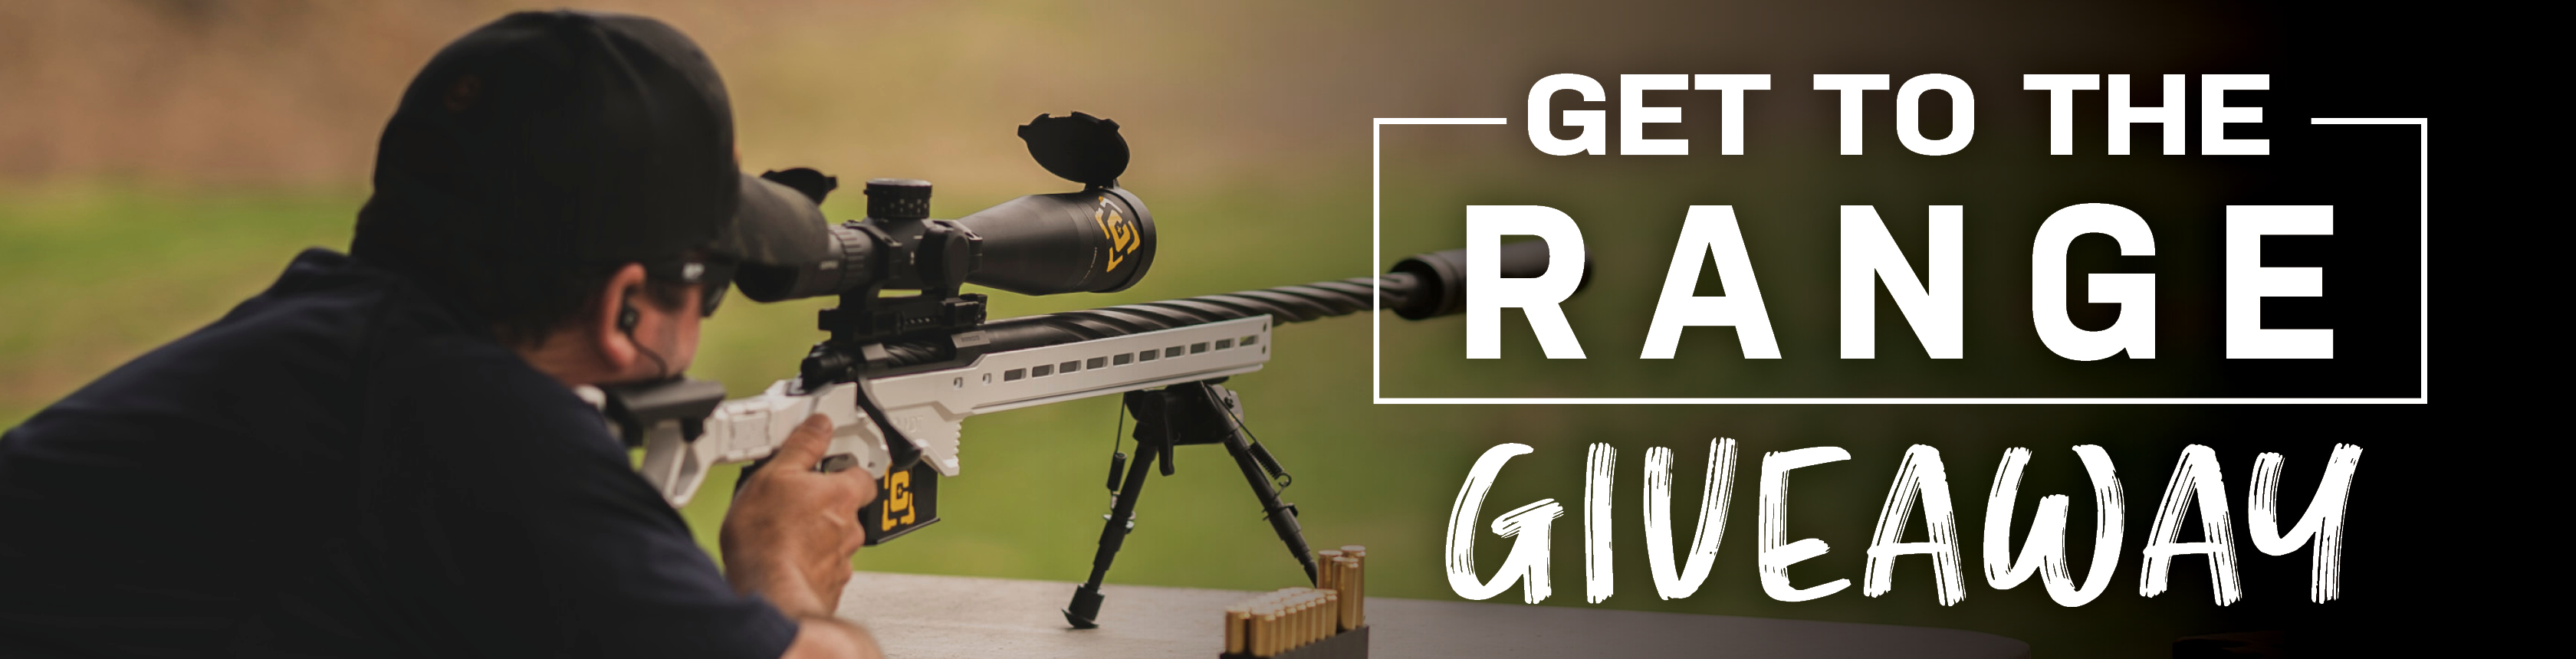 Get to the Range Giveaway